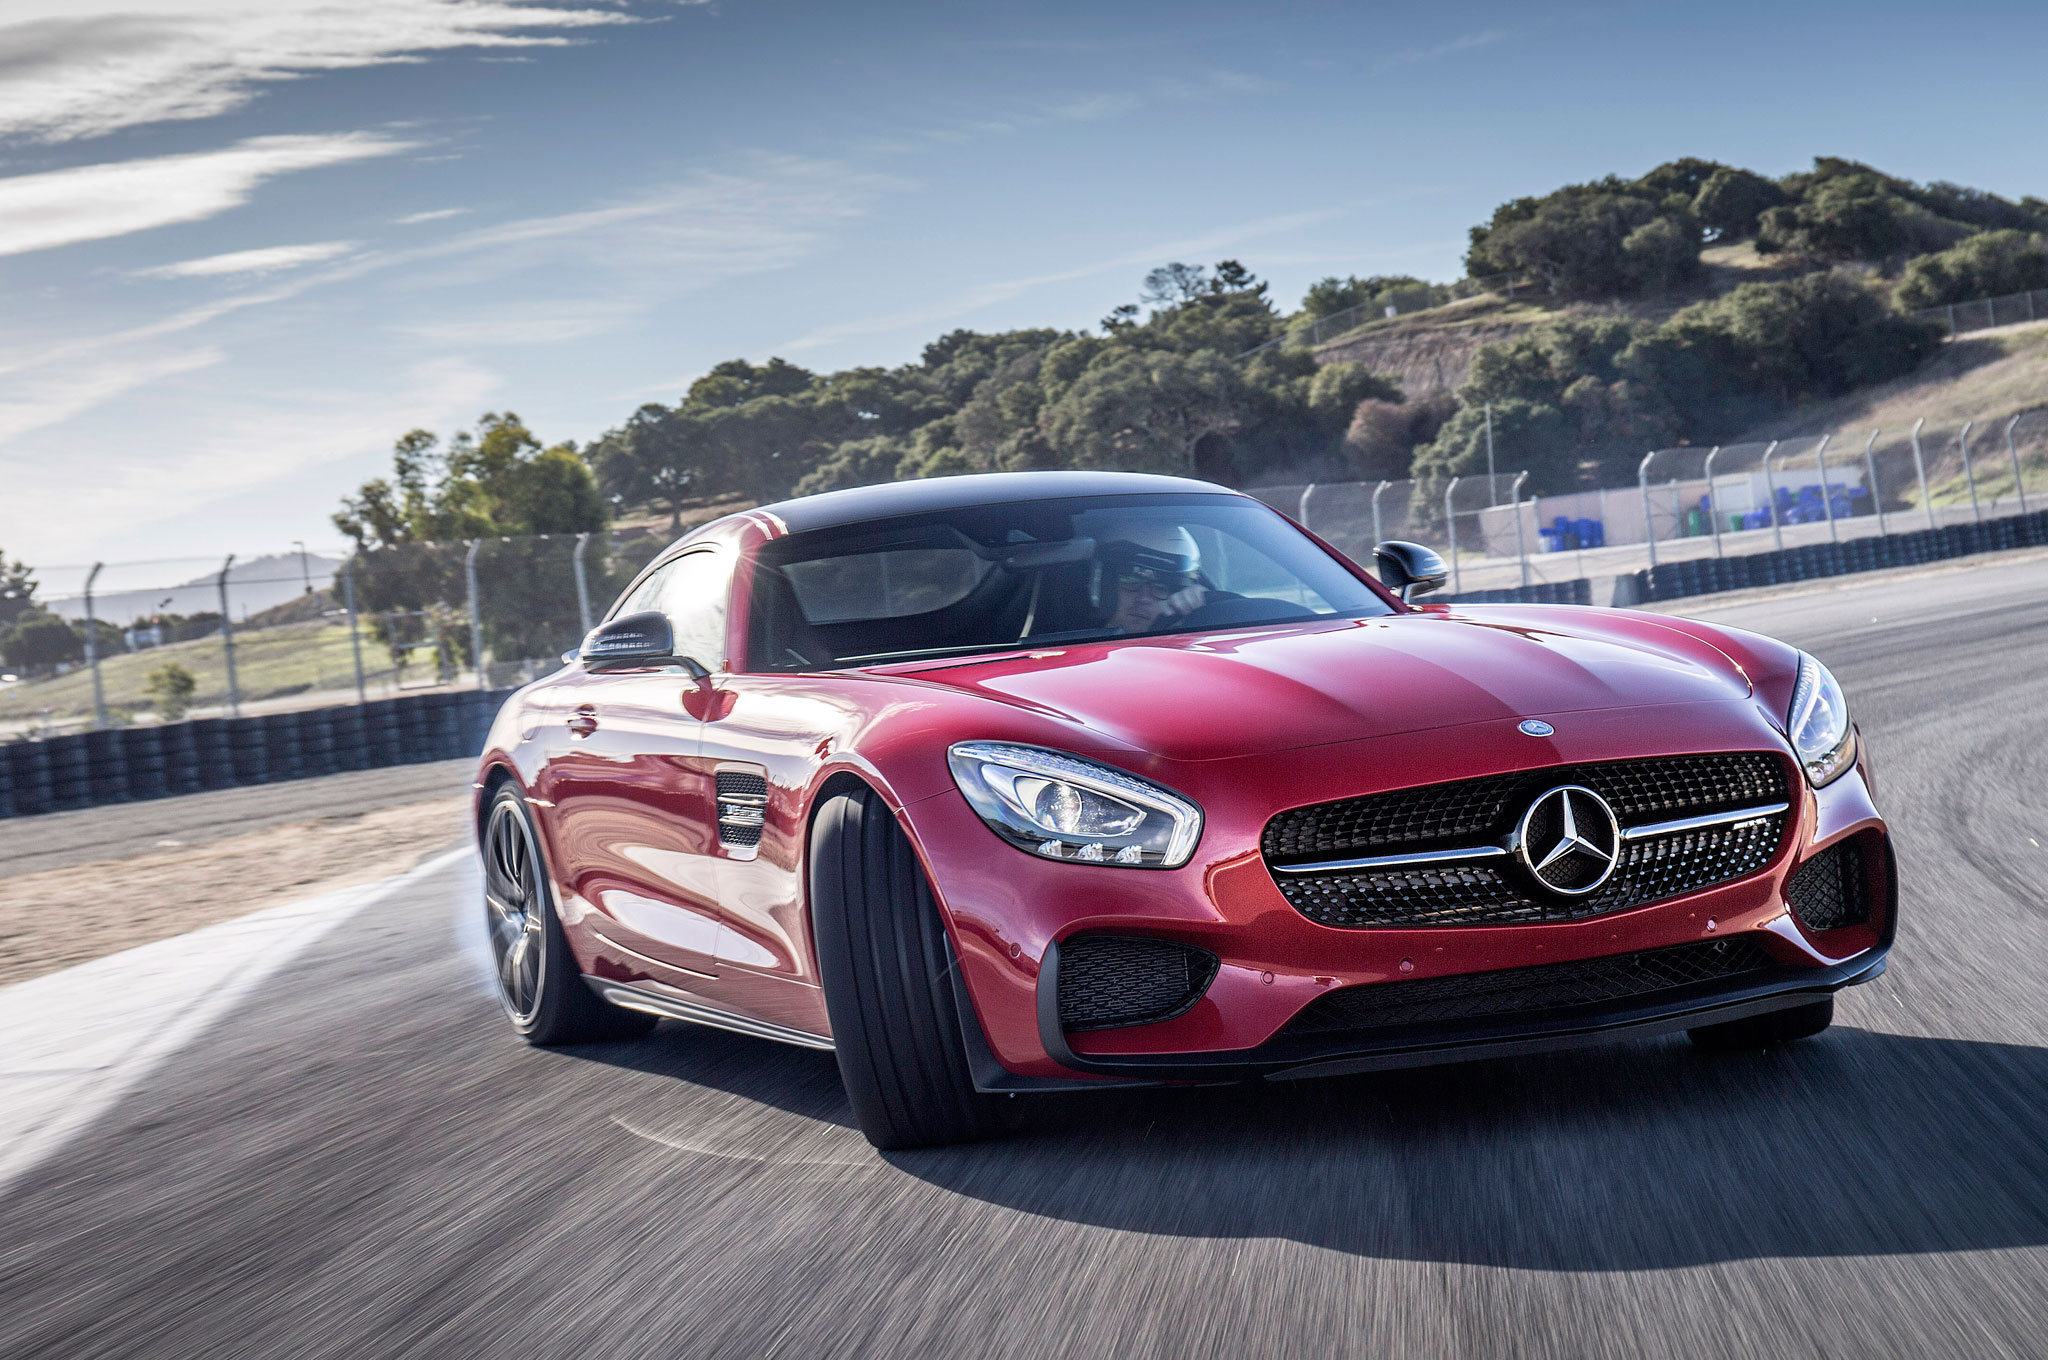 2016 Mercedes AMG GT S Edition 1 Front Three Quarter In Motion 12